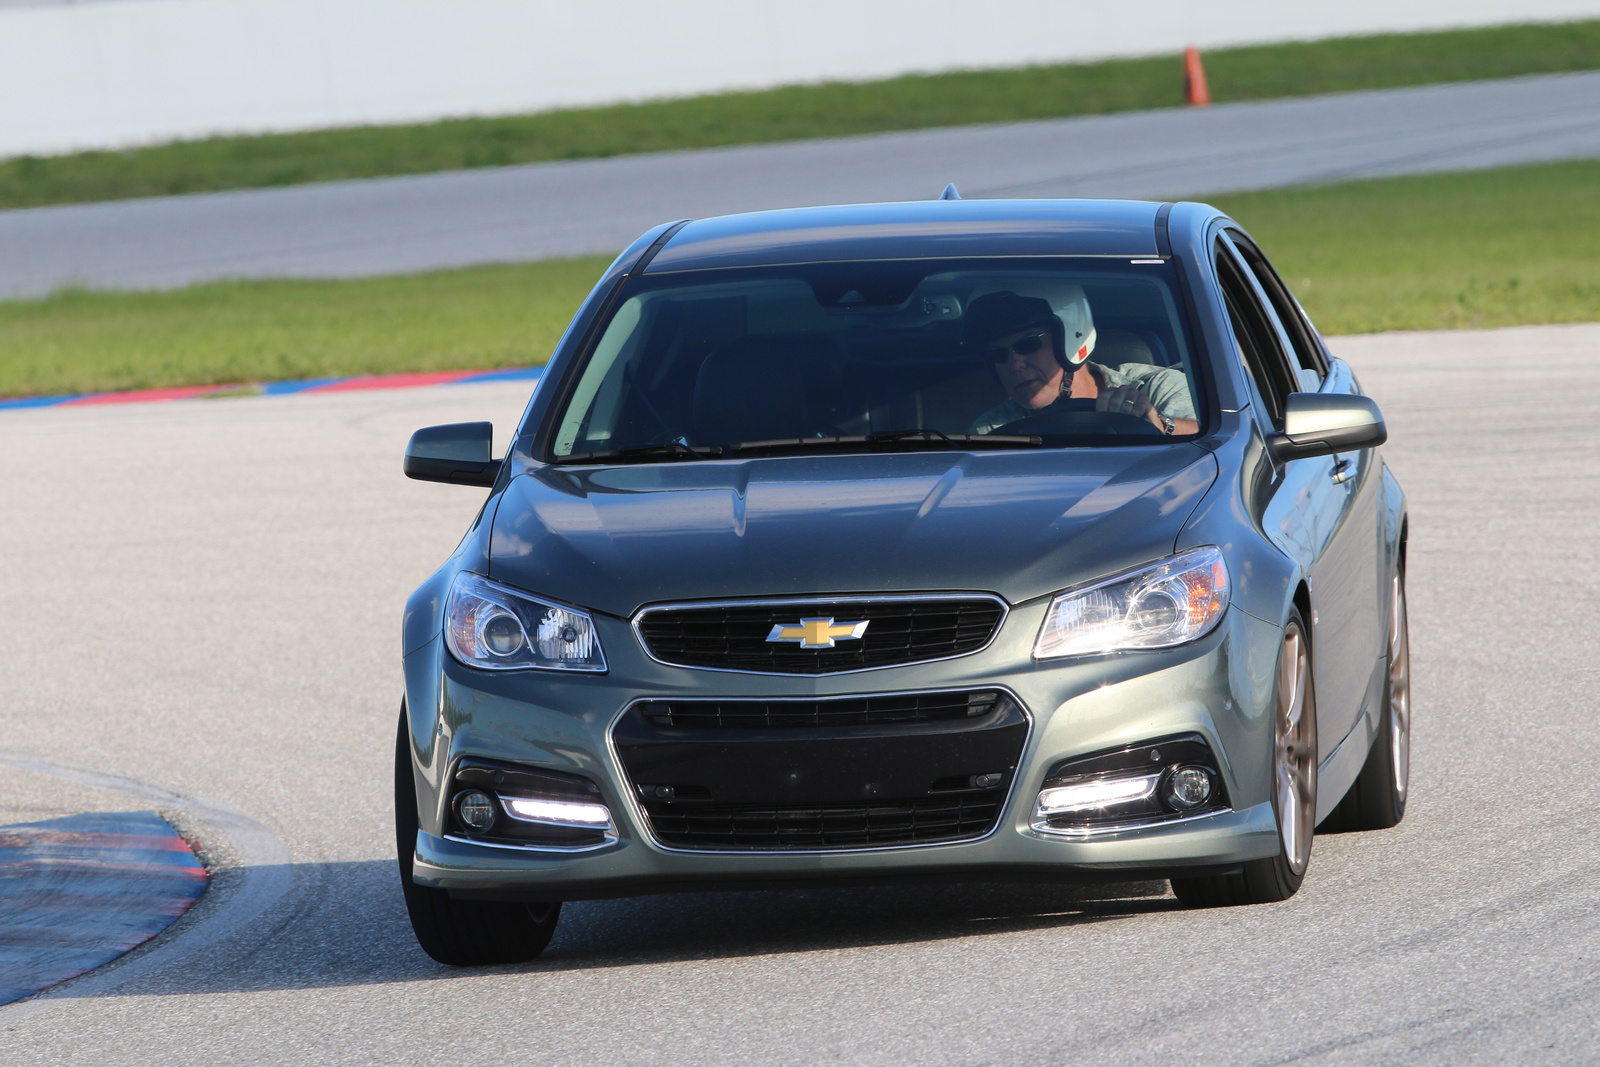 2015 / 2016 Chevrolet SS for Sale in your area - CarGurus